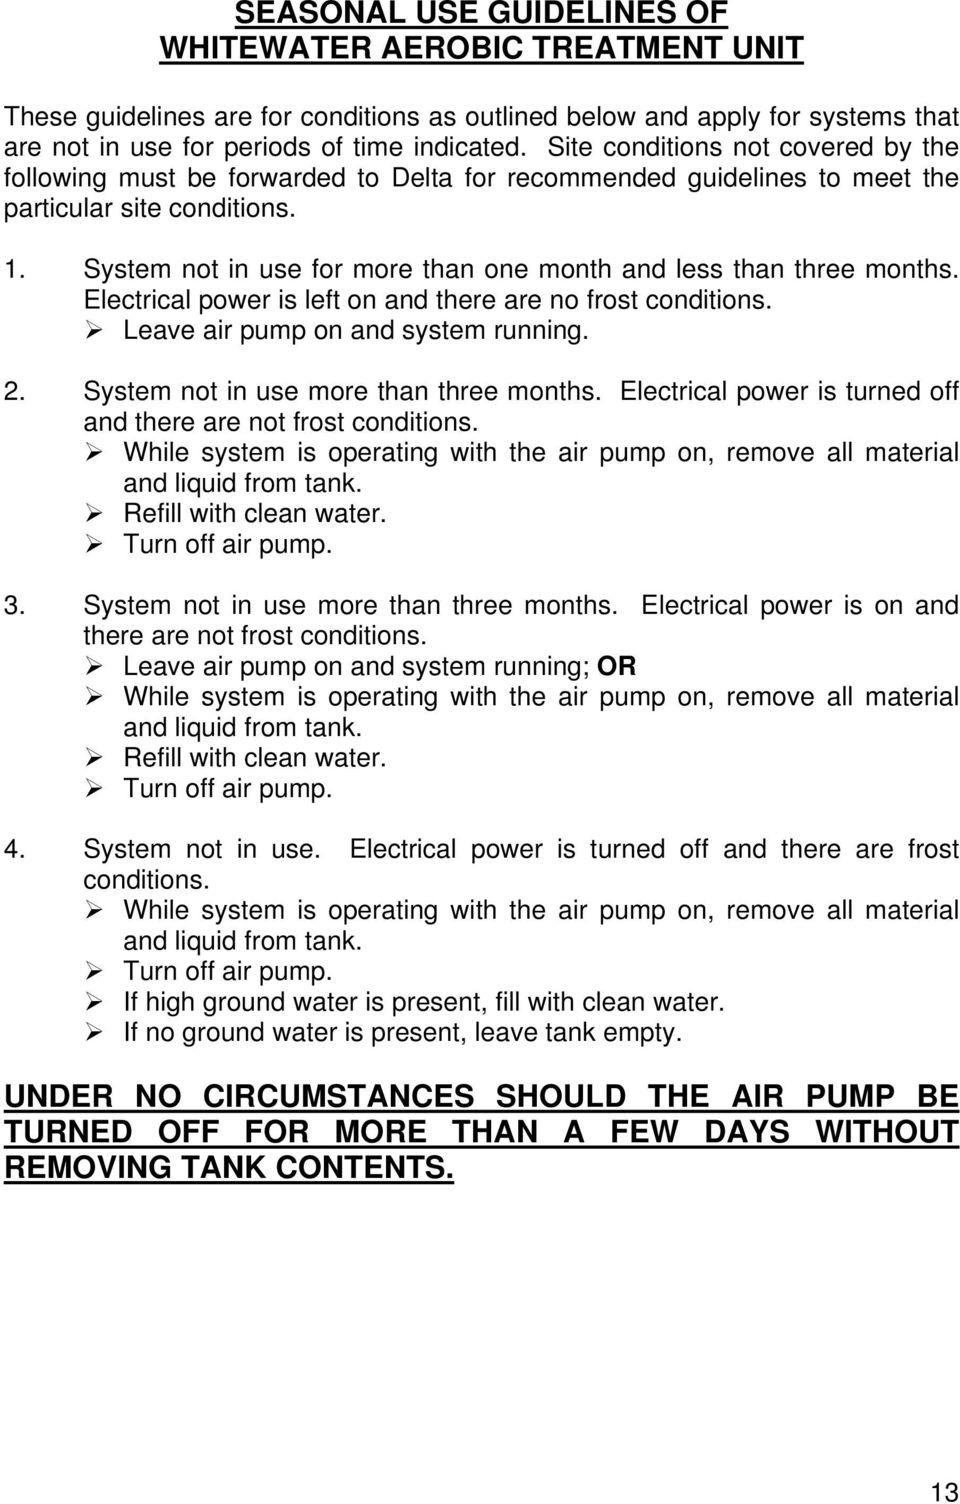 Whitewater Aerobic Treatment Unit Pdf Chicago Electric 45005 Wiring Diagram System Not In Use For More Than One Month And Less Three Months Electrical